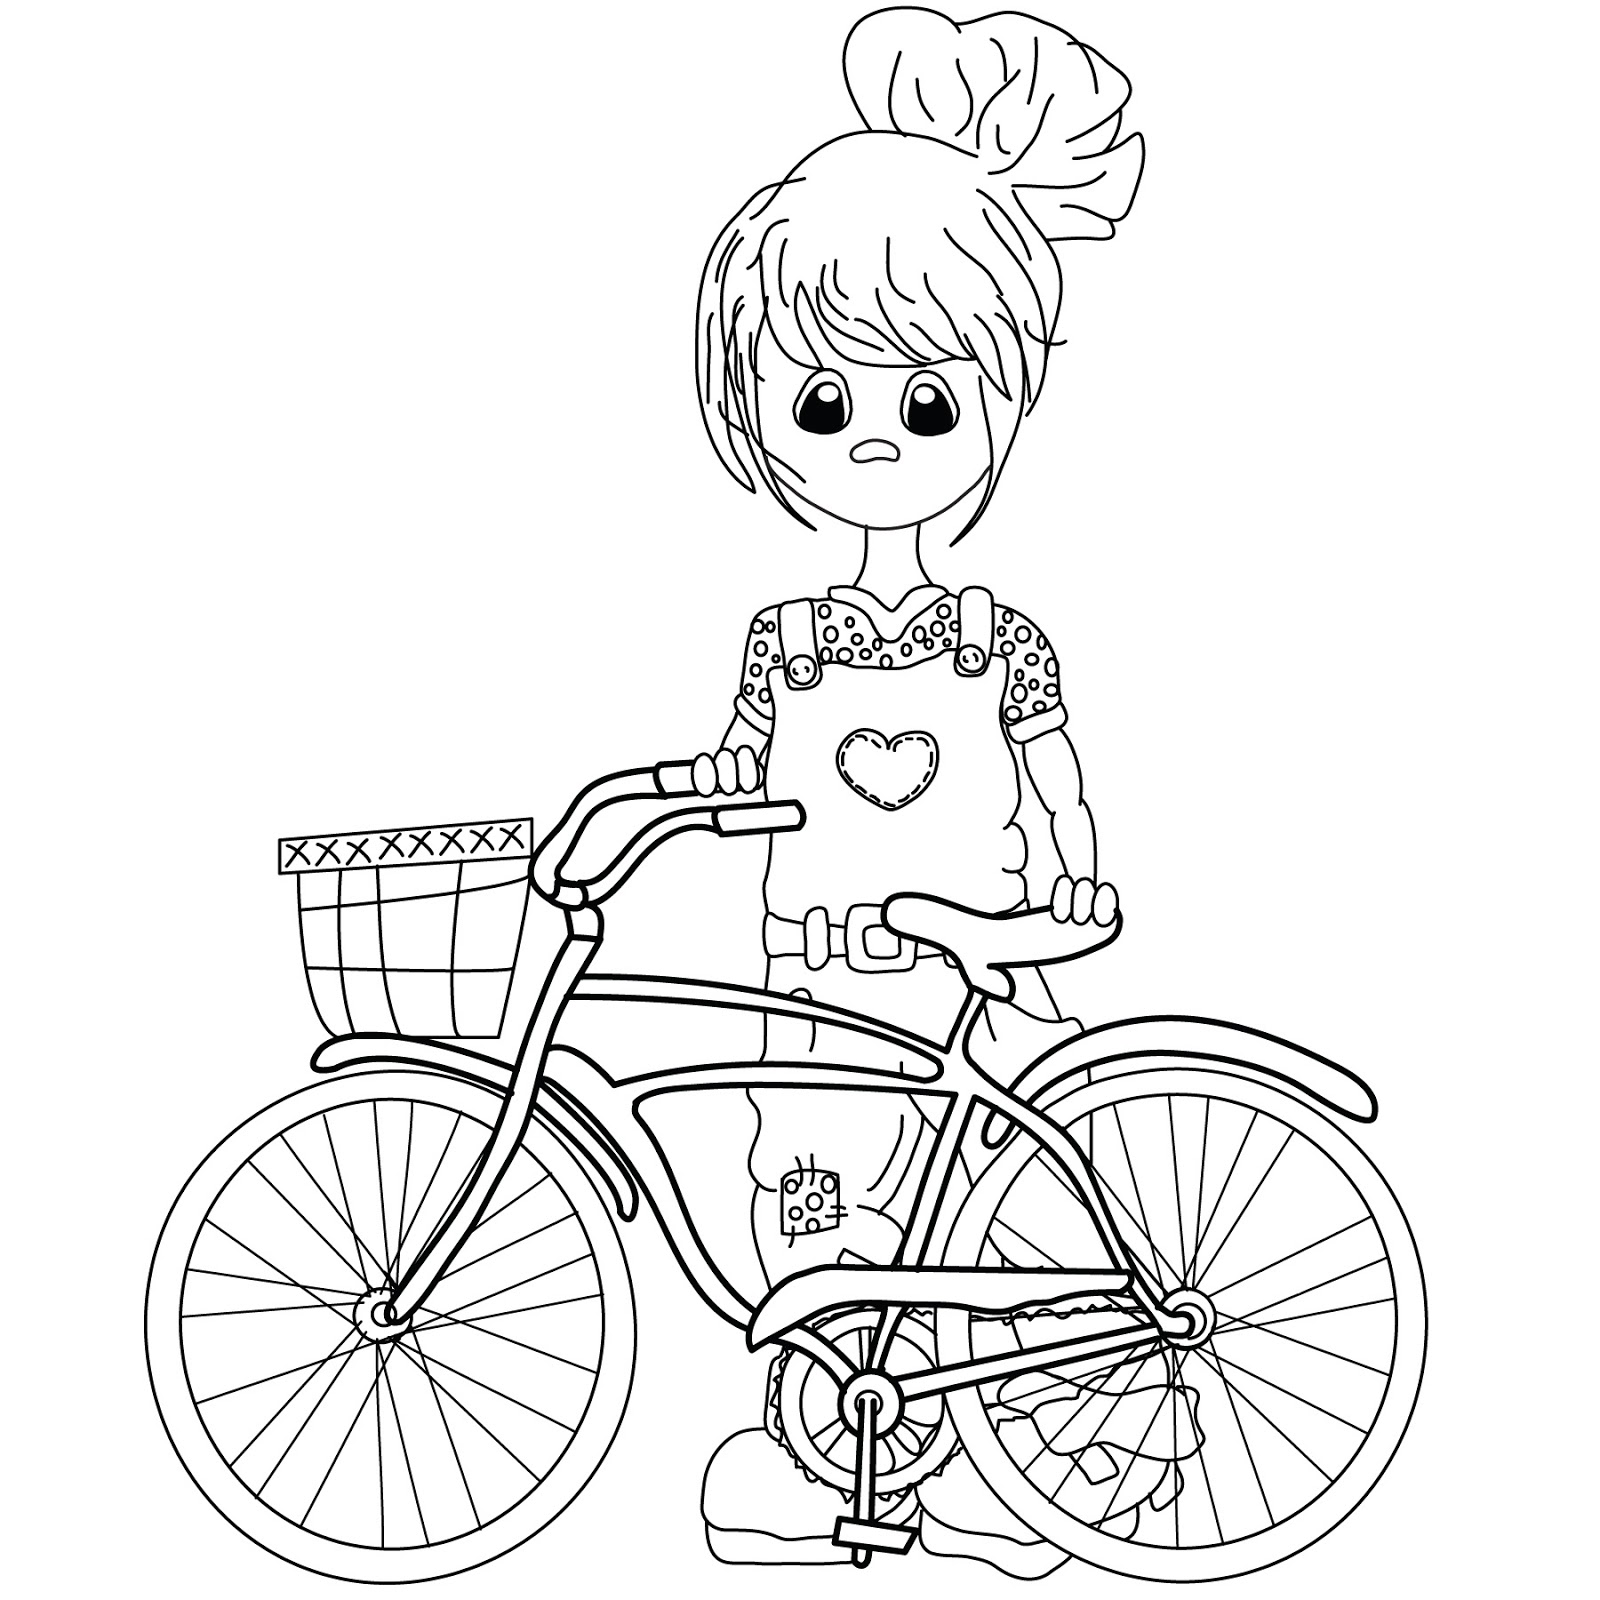 Free How To Draw A Bike For Kids Download Free Clip Art